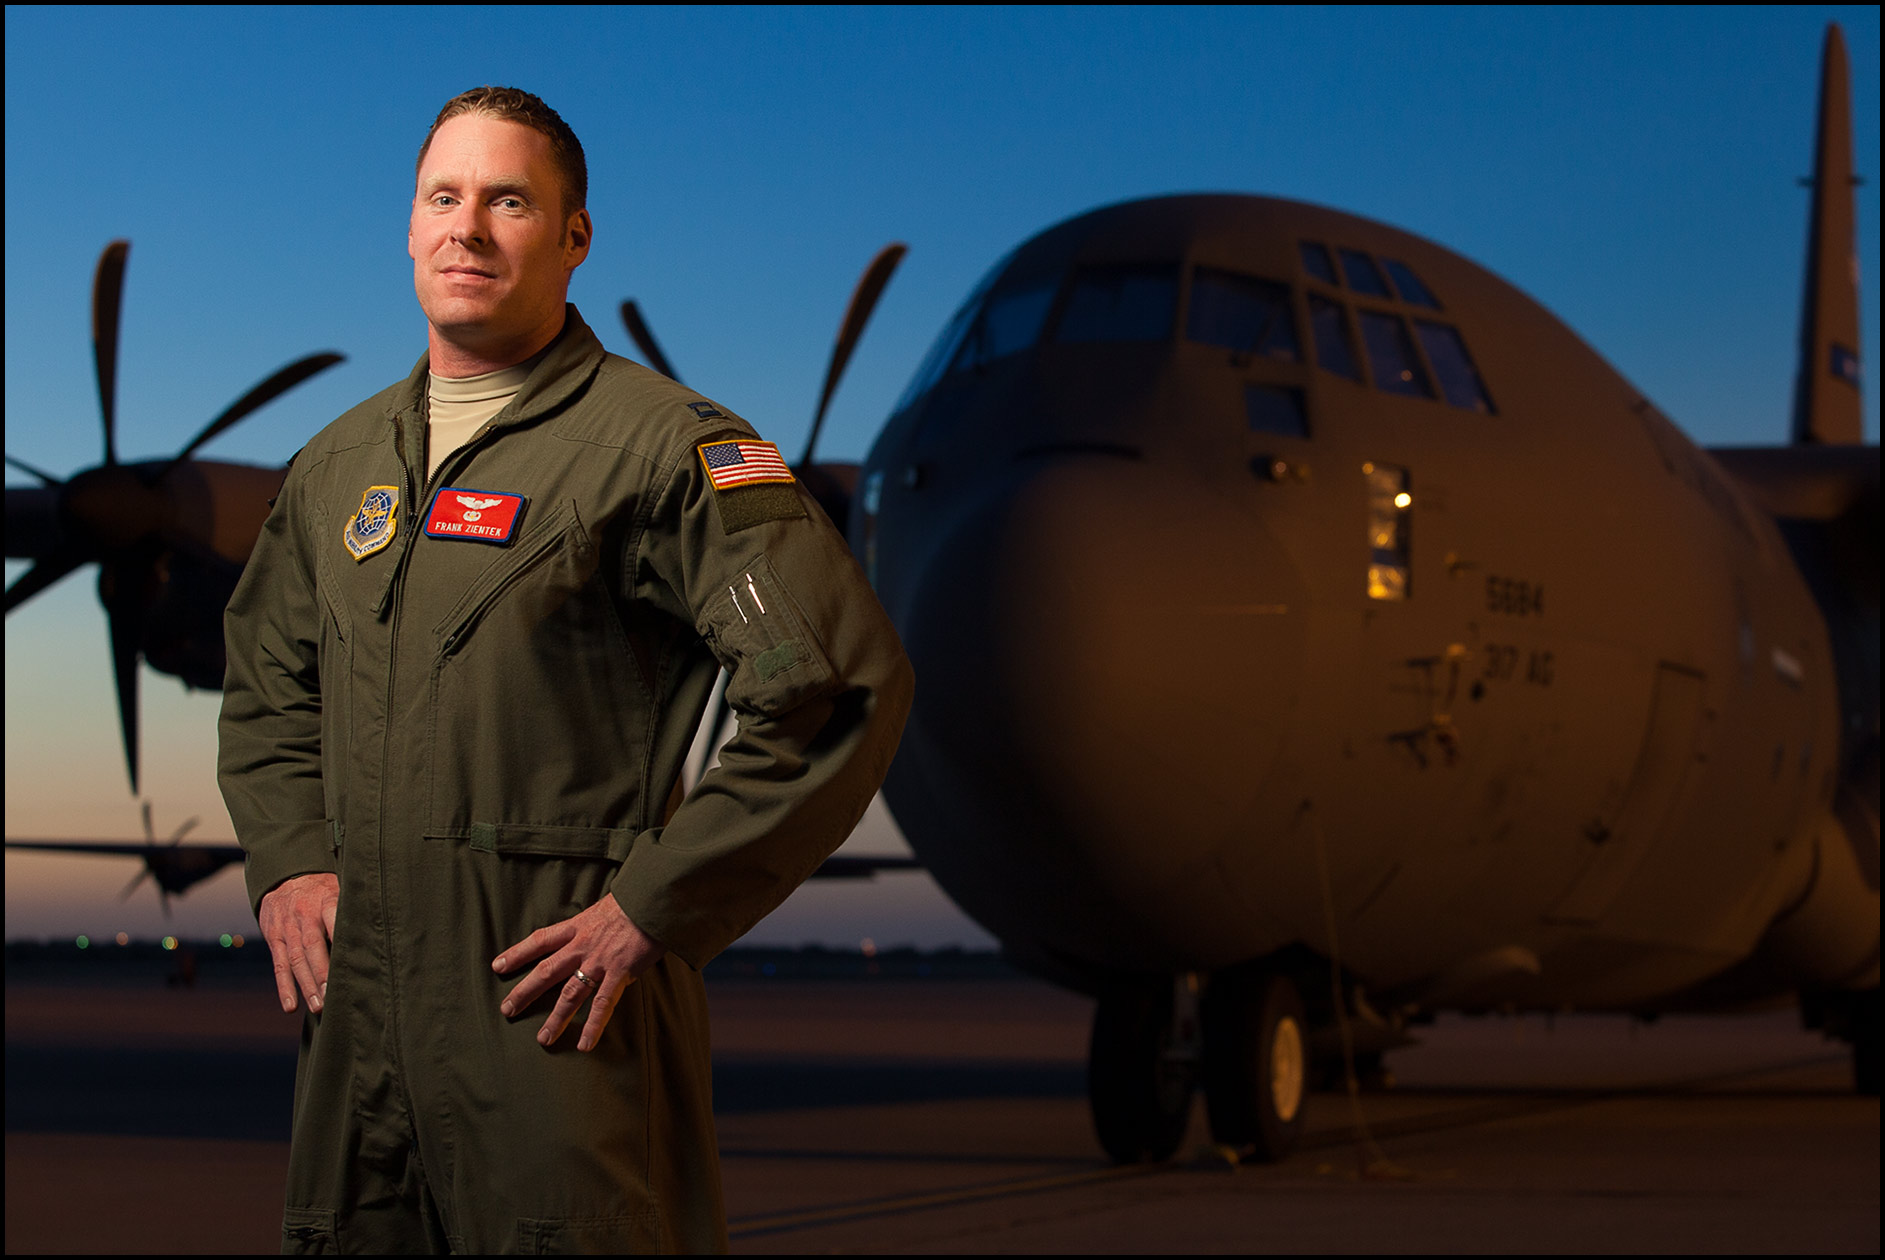 A portrait of a USAF Captain in front of a C-130 J transport aircraft at Dyess AFB.